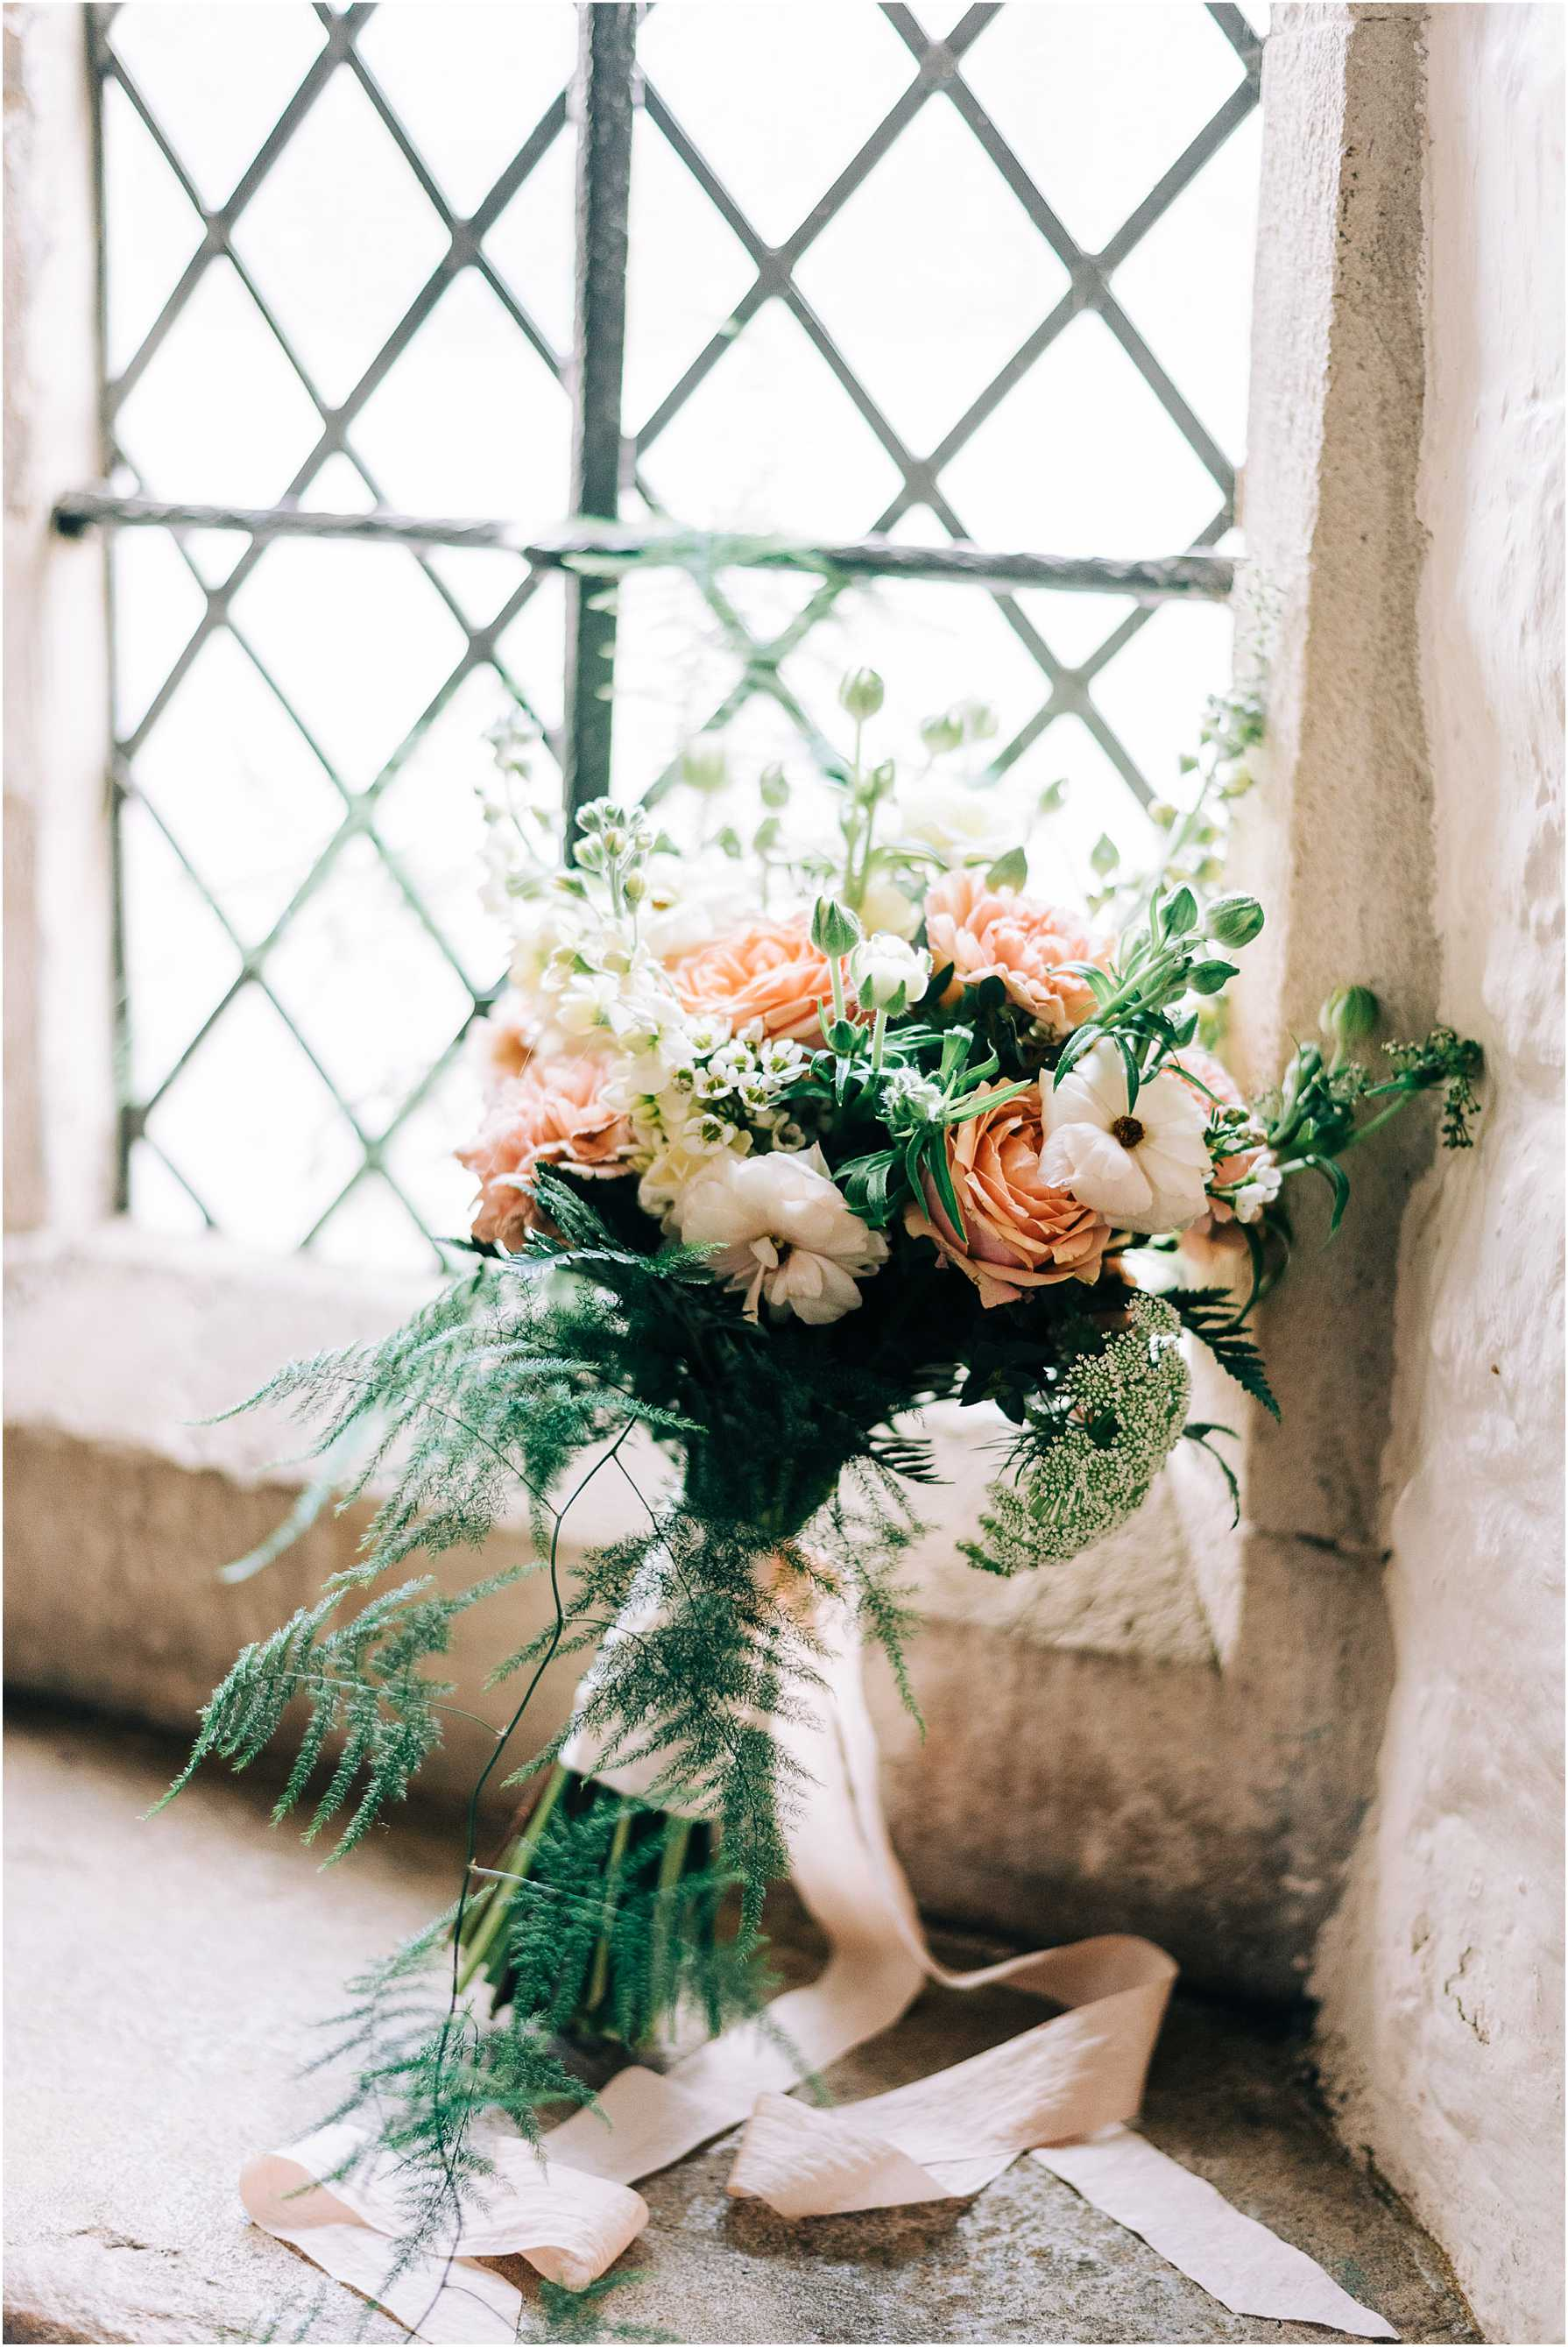 bridal bouquet sitting in a light filled window sill